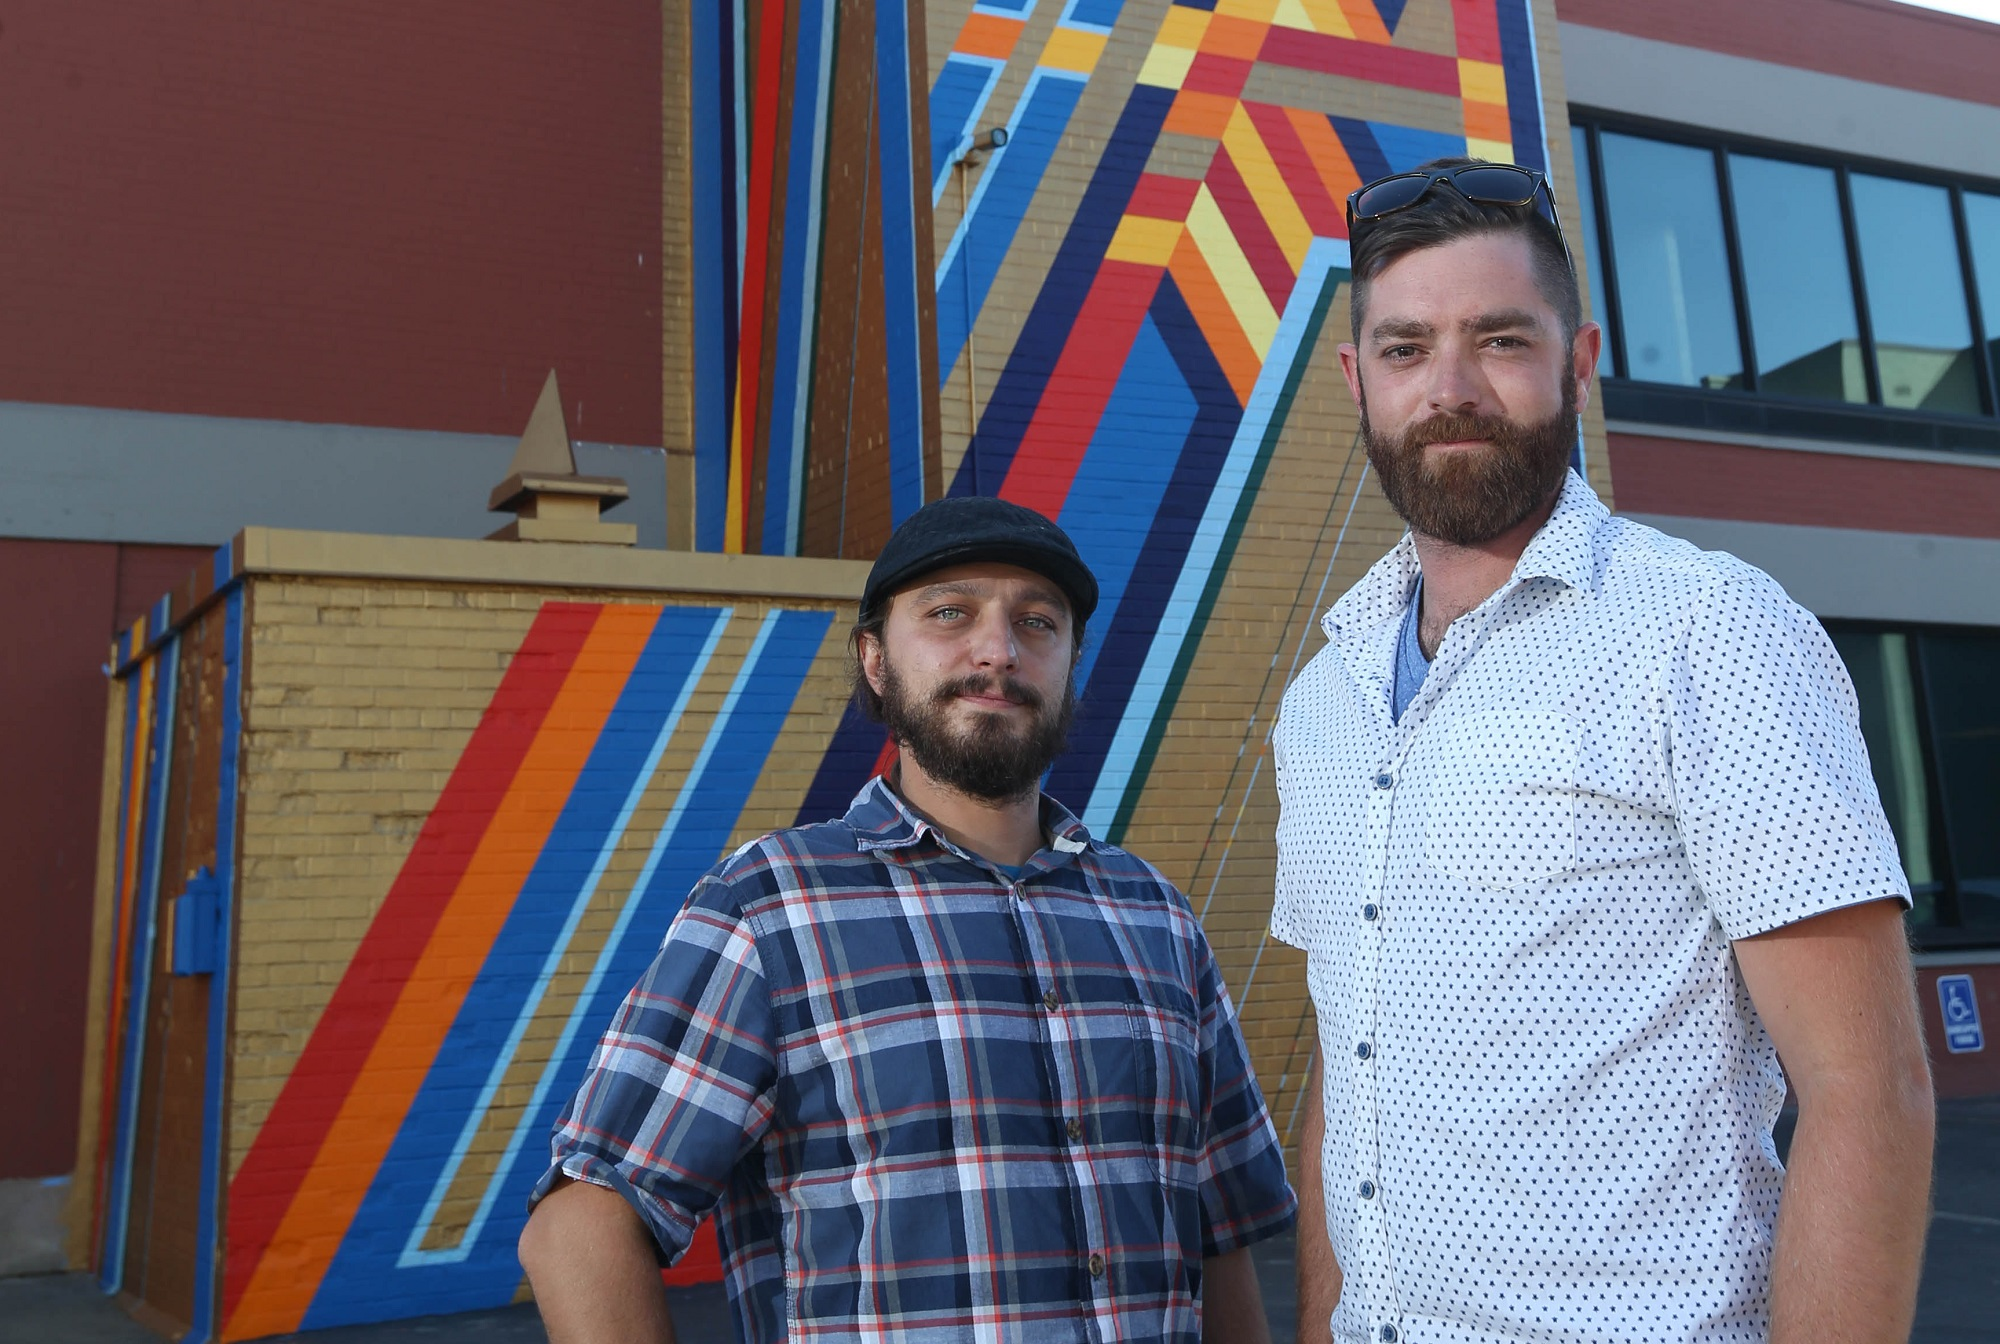 Mural artists Christopher Michael Kameck, left, and Nicholas Conrad Miller - collectively known as Team Razor Wire - just finished their geometric style Tower of Power at 45 Jewett Pkwy. (Sharon Cantillon/Buffalo News)